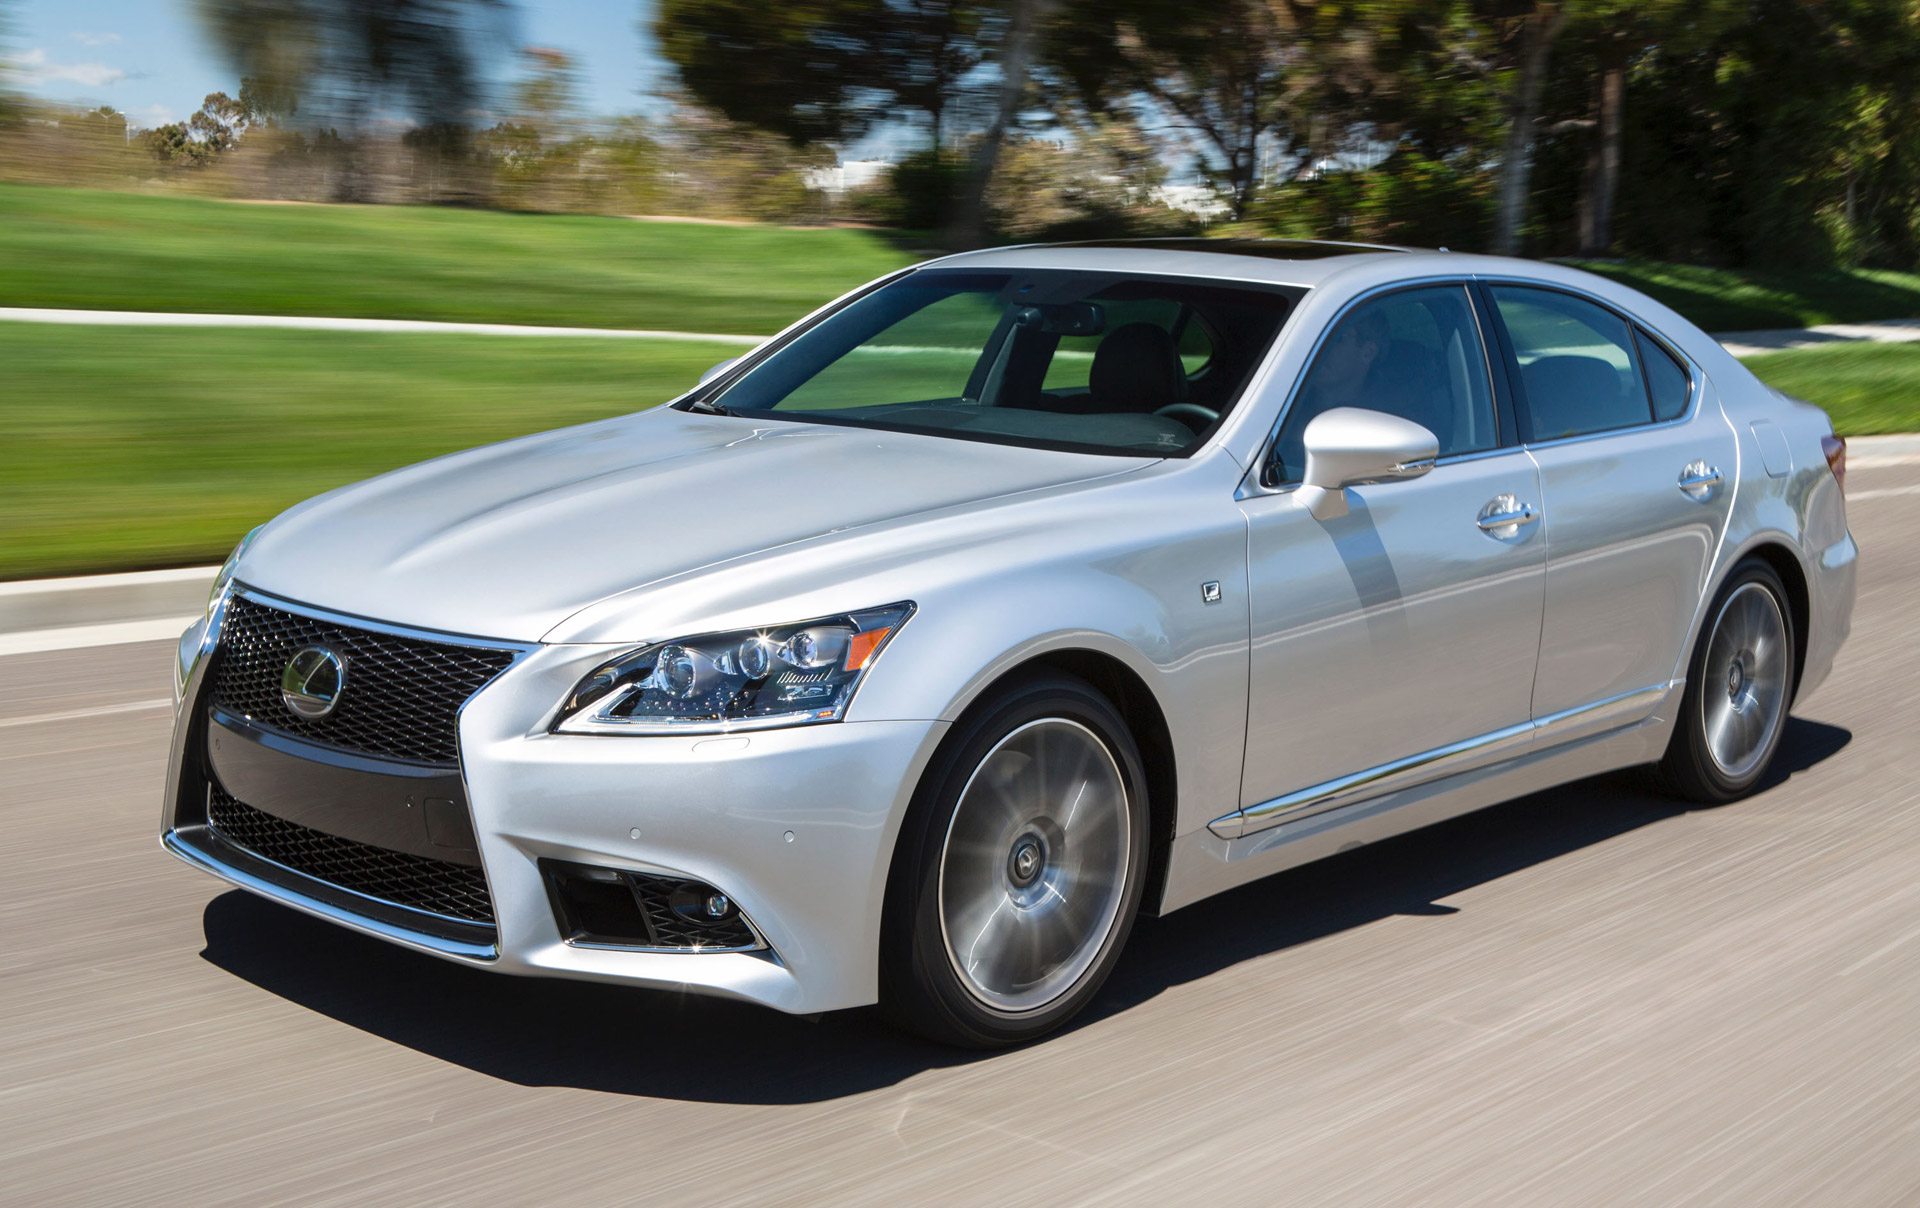 2016 lexus ls gets minor updates ahead of new model s arrival